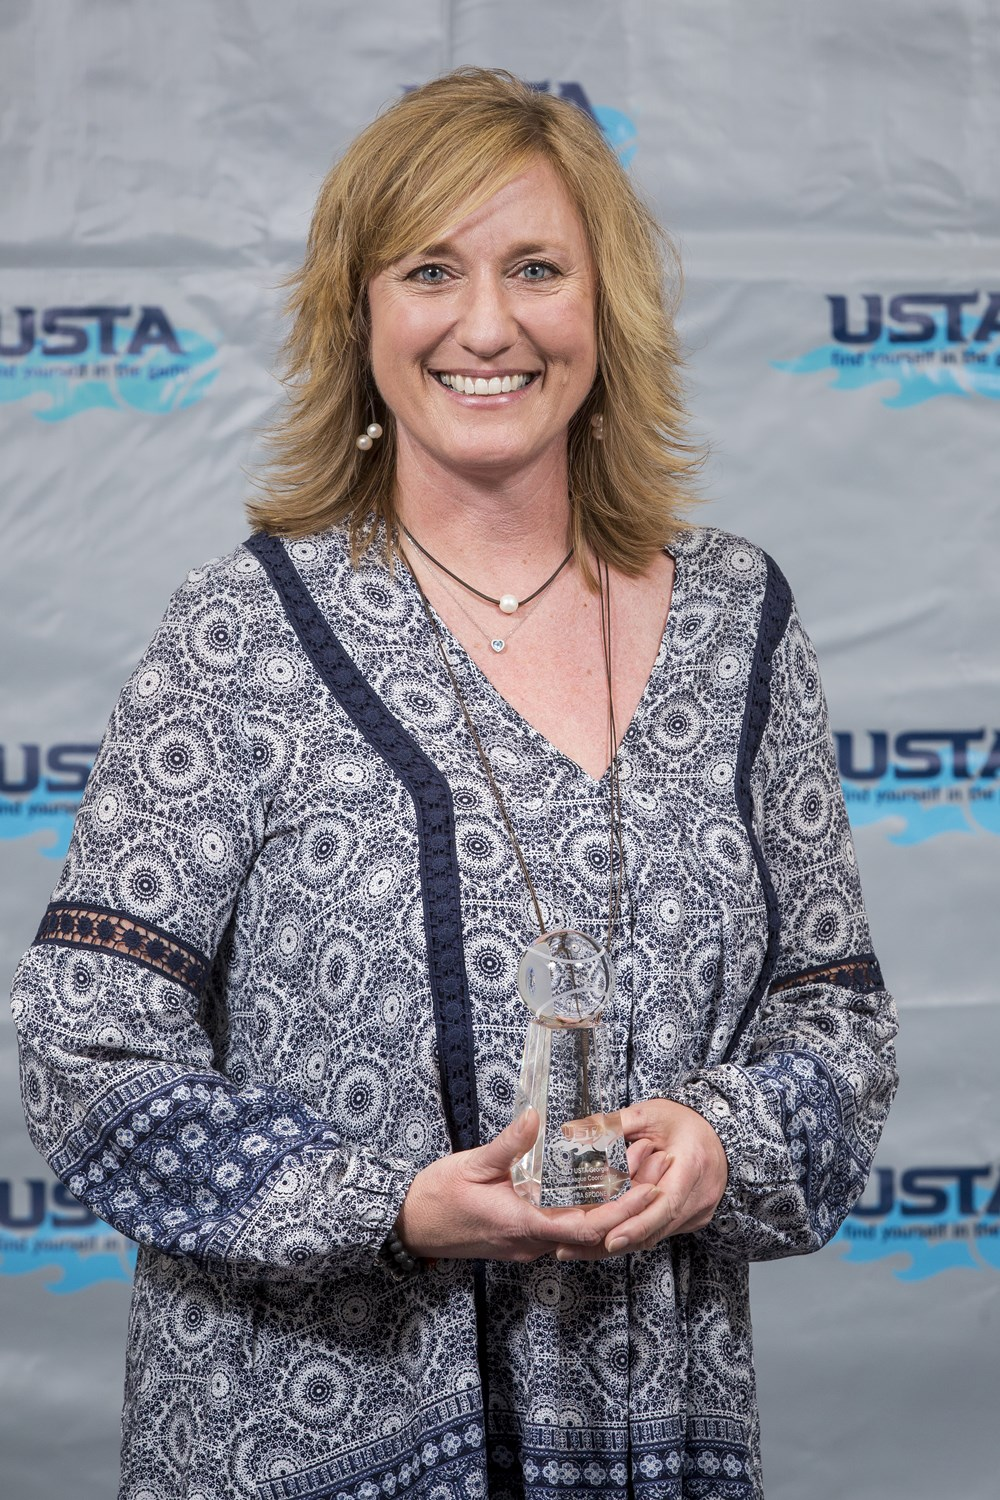 Tabitha_Spooner_-_2017_USTA_Georgia_LLC_of_the_Year